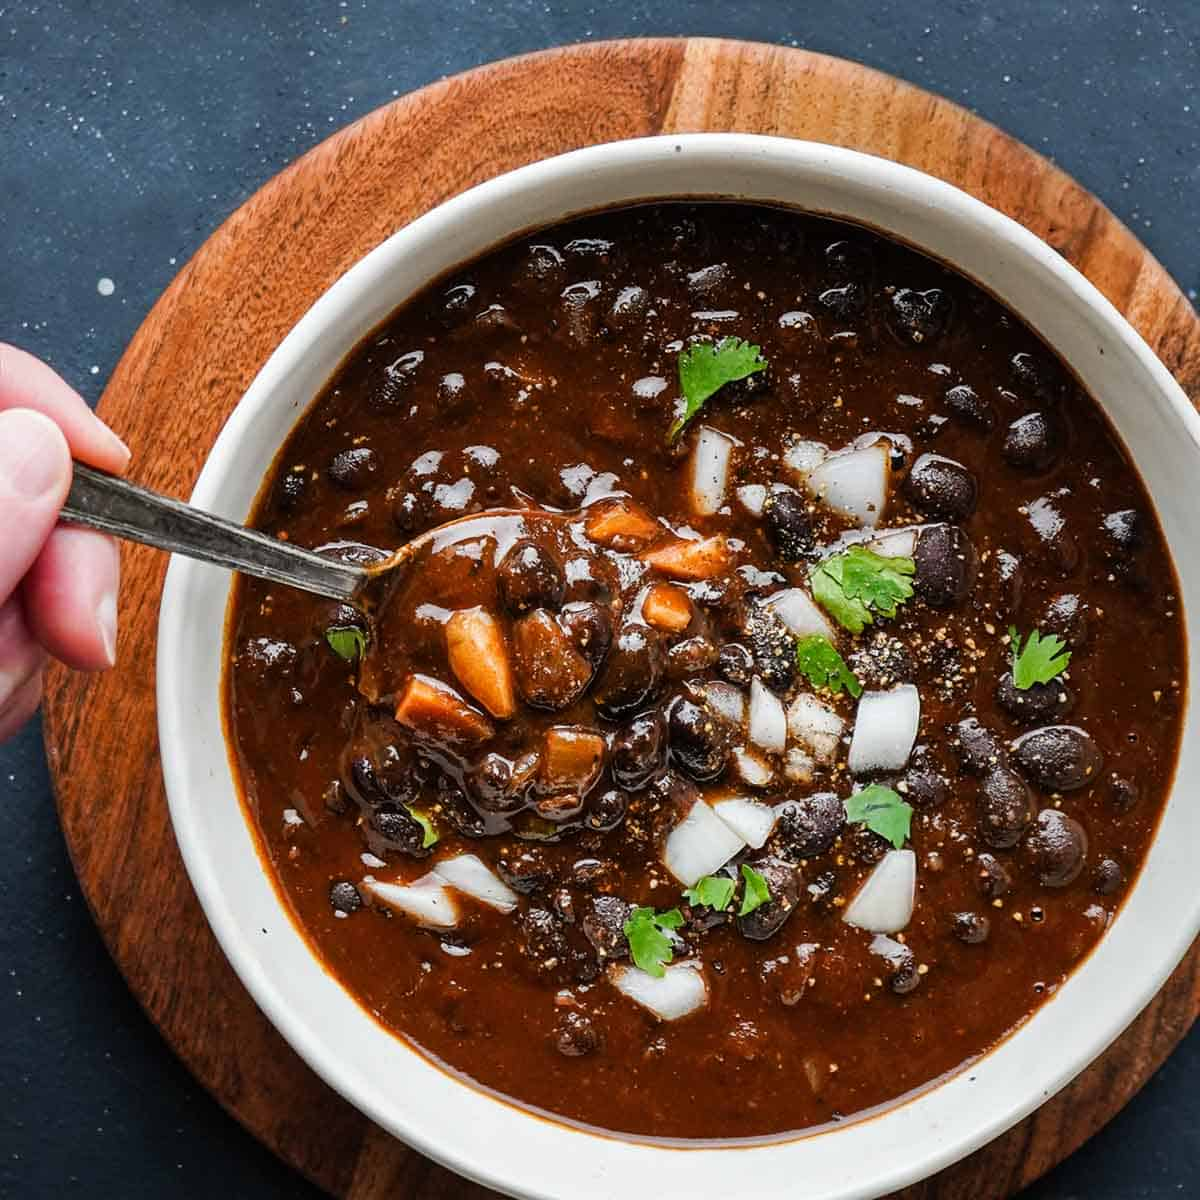 Smoky Black Bean Soup in bowl with spoon inside